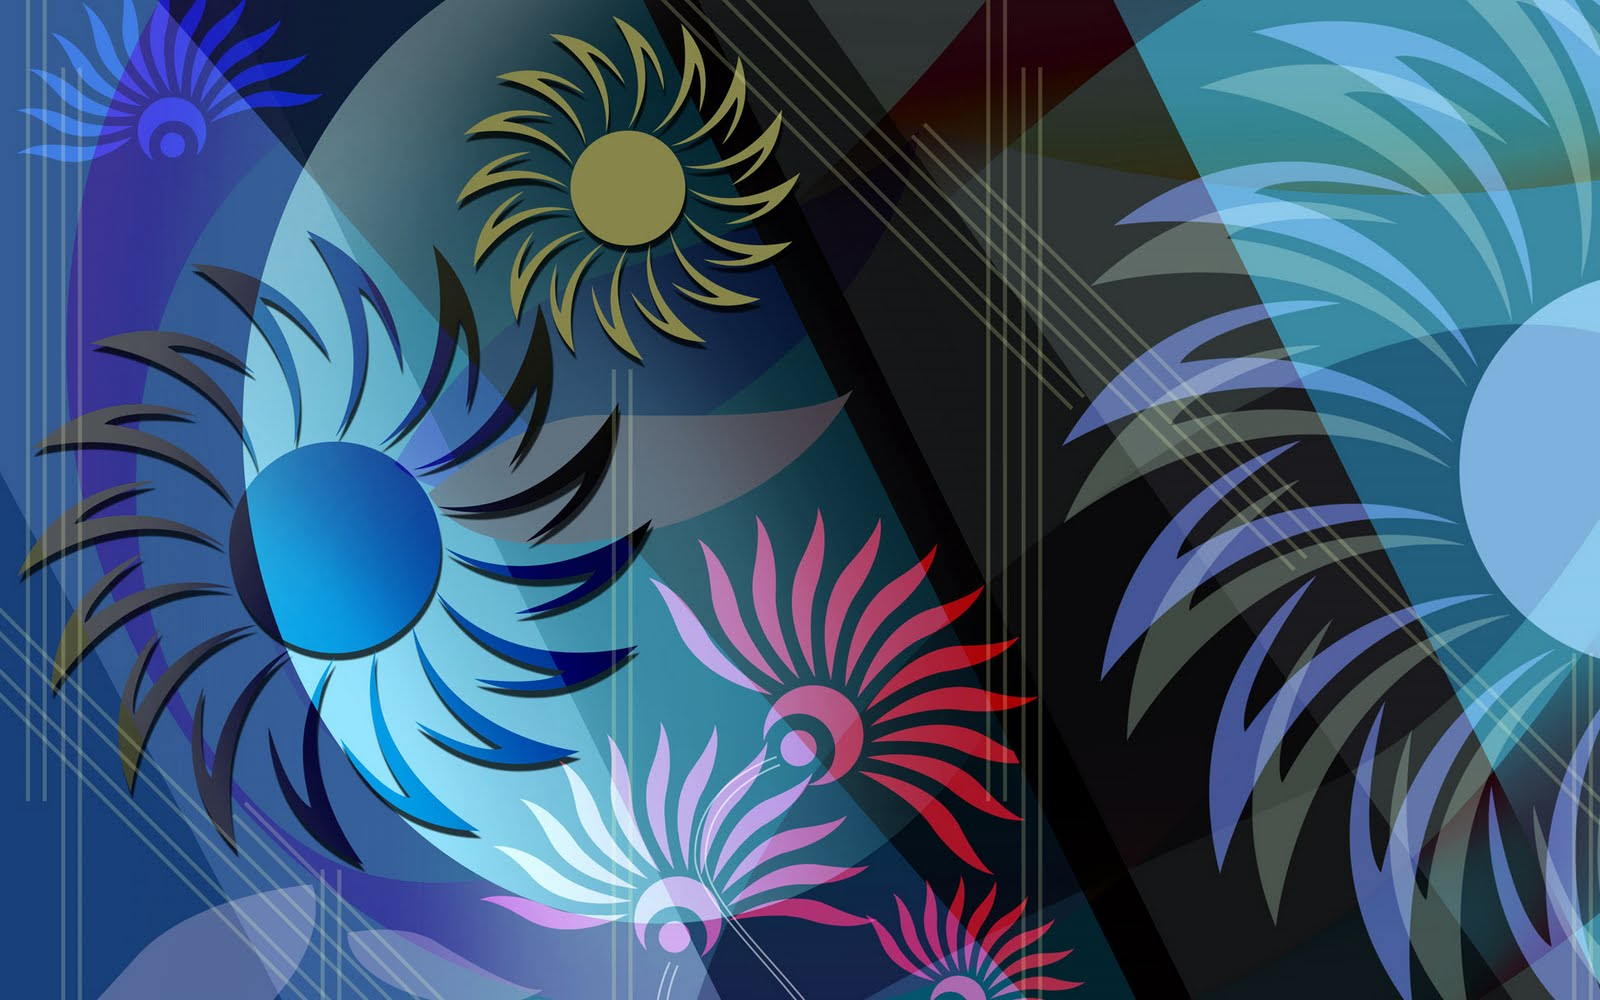 http://4.bp.blogspot.com/_KLJU3hHDGVM/THXz2Vs7bMI/AAAAAAAADz8/OMq0HOycYxA/s1600/Blue_fractals_abstract_wallpapers.jpg